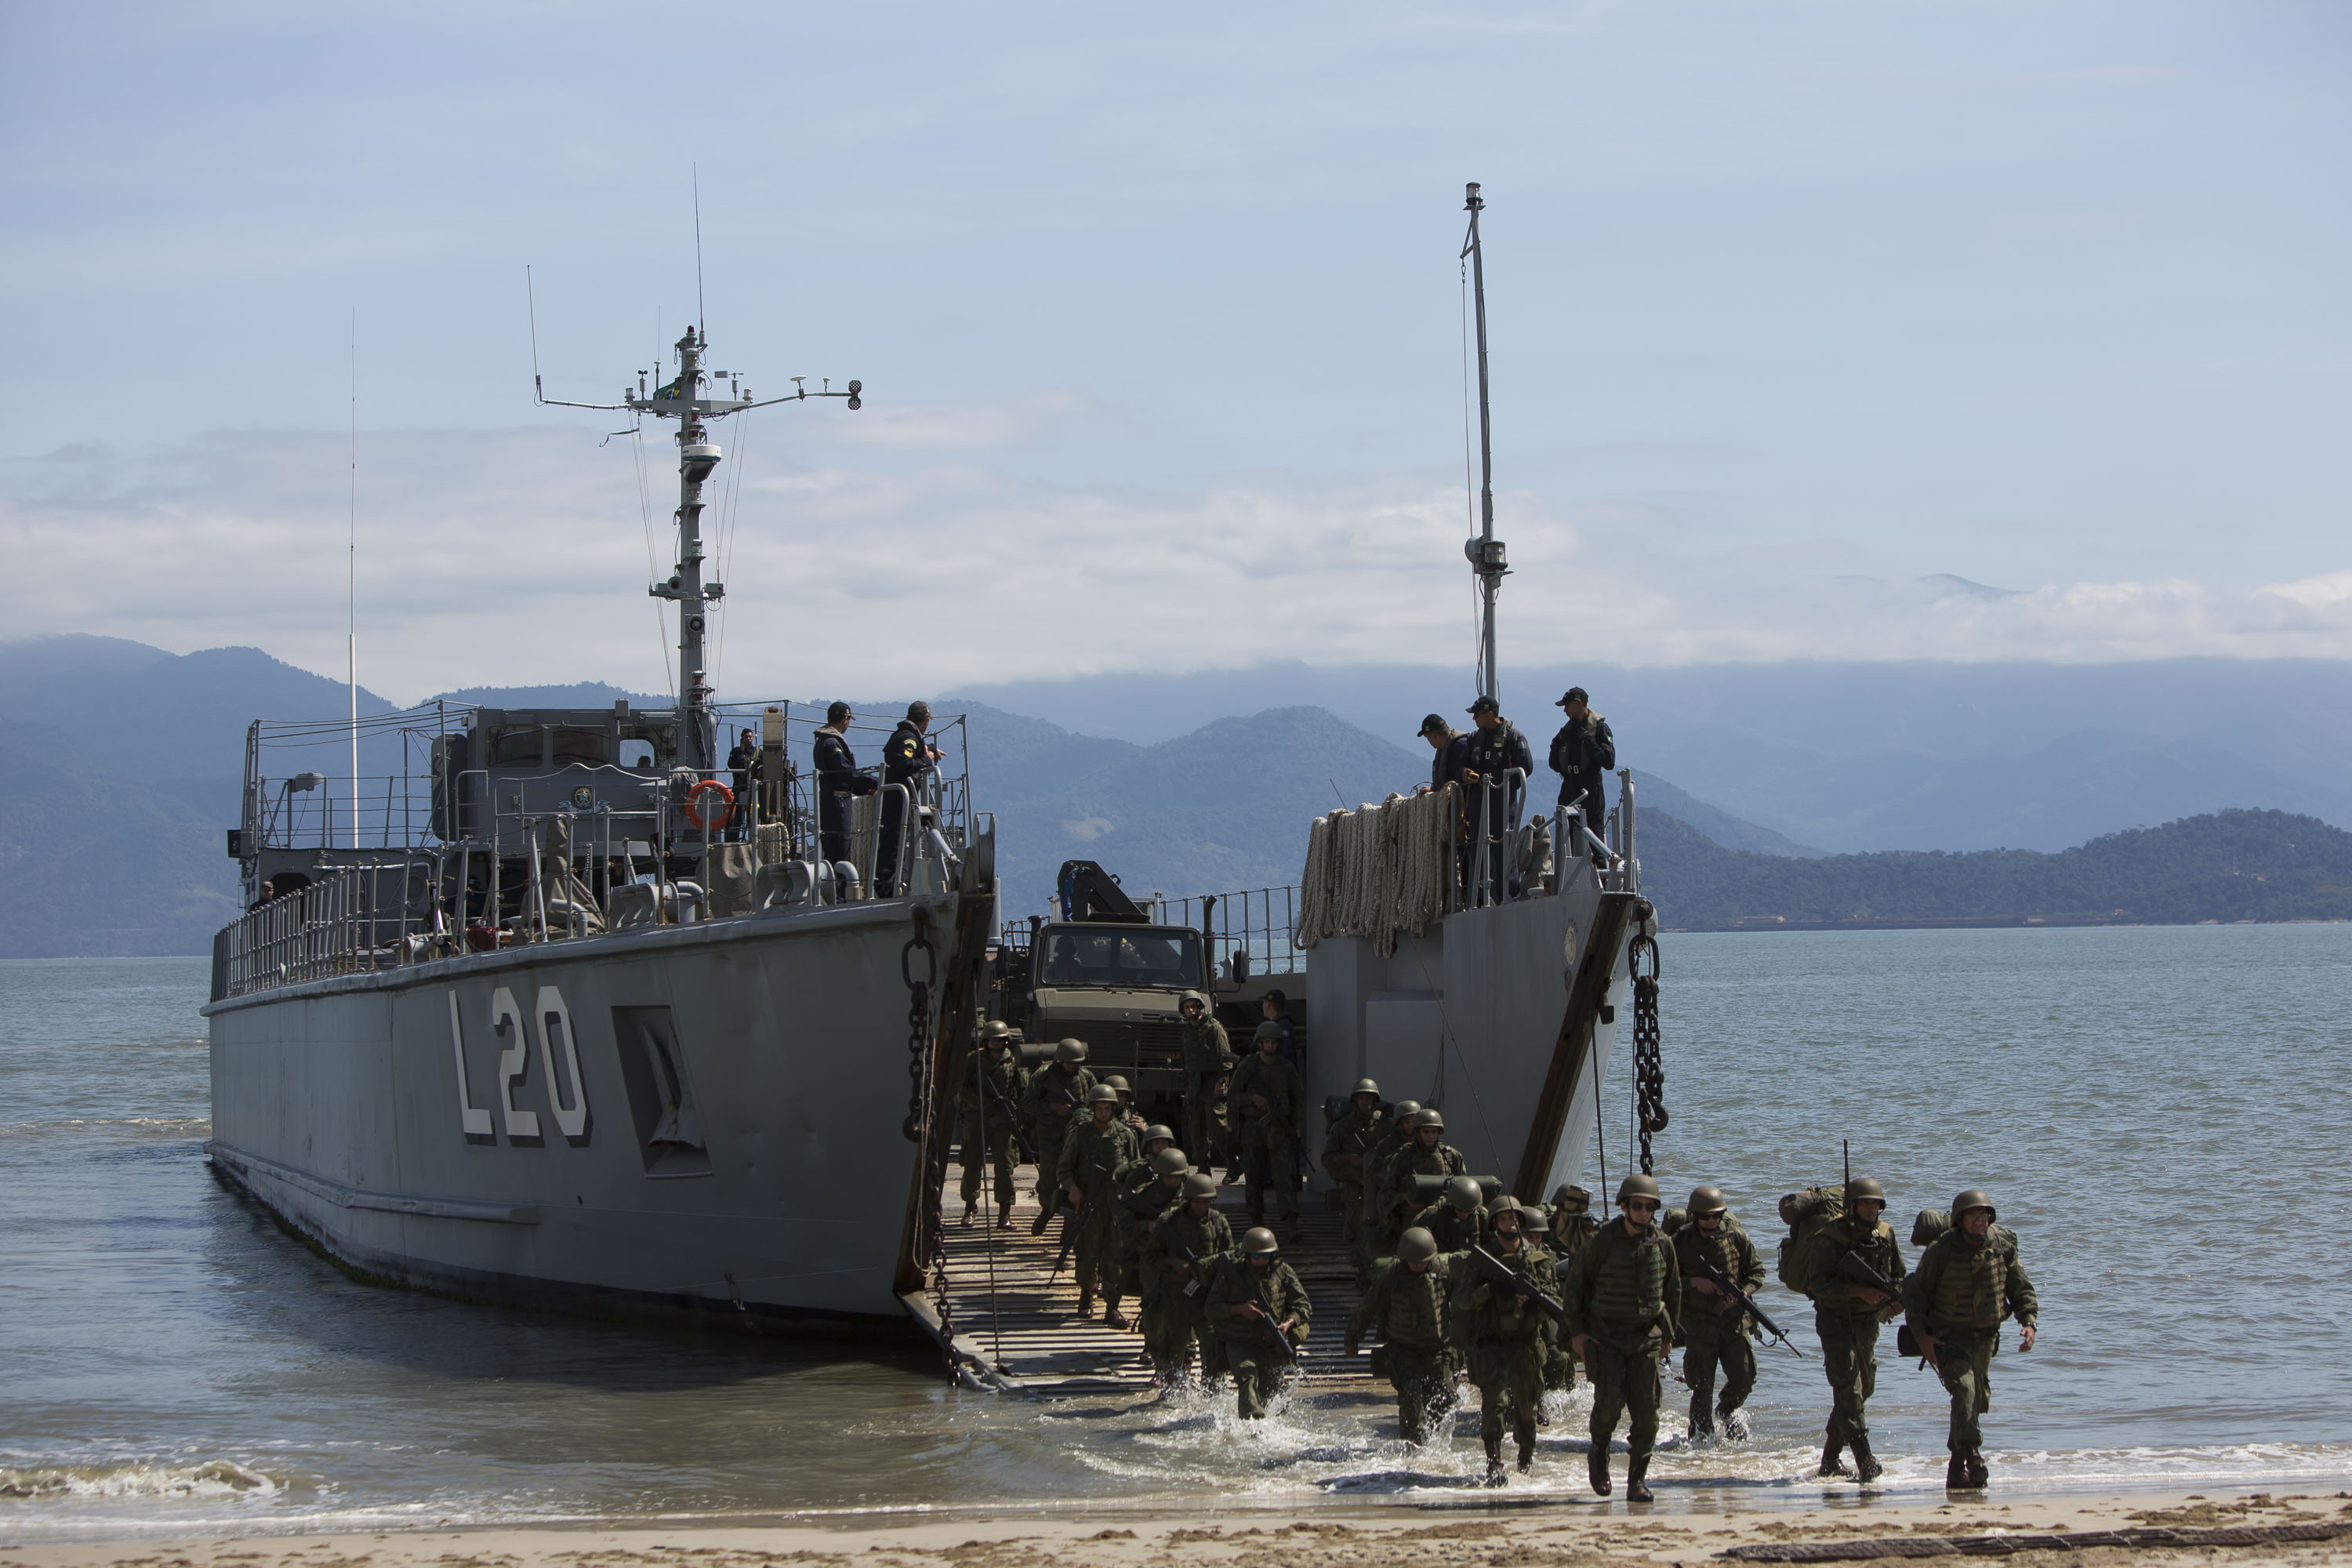 Members of the Brazilian Navy disembark on Marambaia Island, during an UNITAS multinational naval exercise in Rio de Janeiro, Brazil, Tuesday, Aug. 27, 2019. From Aug. 19 to 30, naval forces from Brazil, Chile, Argentina, Colombia, Ecuador, Panama, Paraguay, Peru, Mexico, United Kingdom and the United States, will take part in UNITAS LX 2019, an annual multinational maritime exercise. (AP Photo/Bruna Prado)